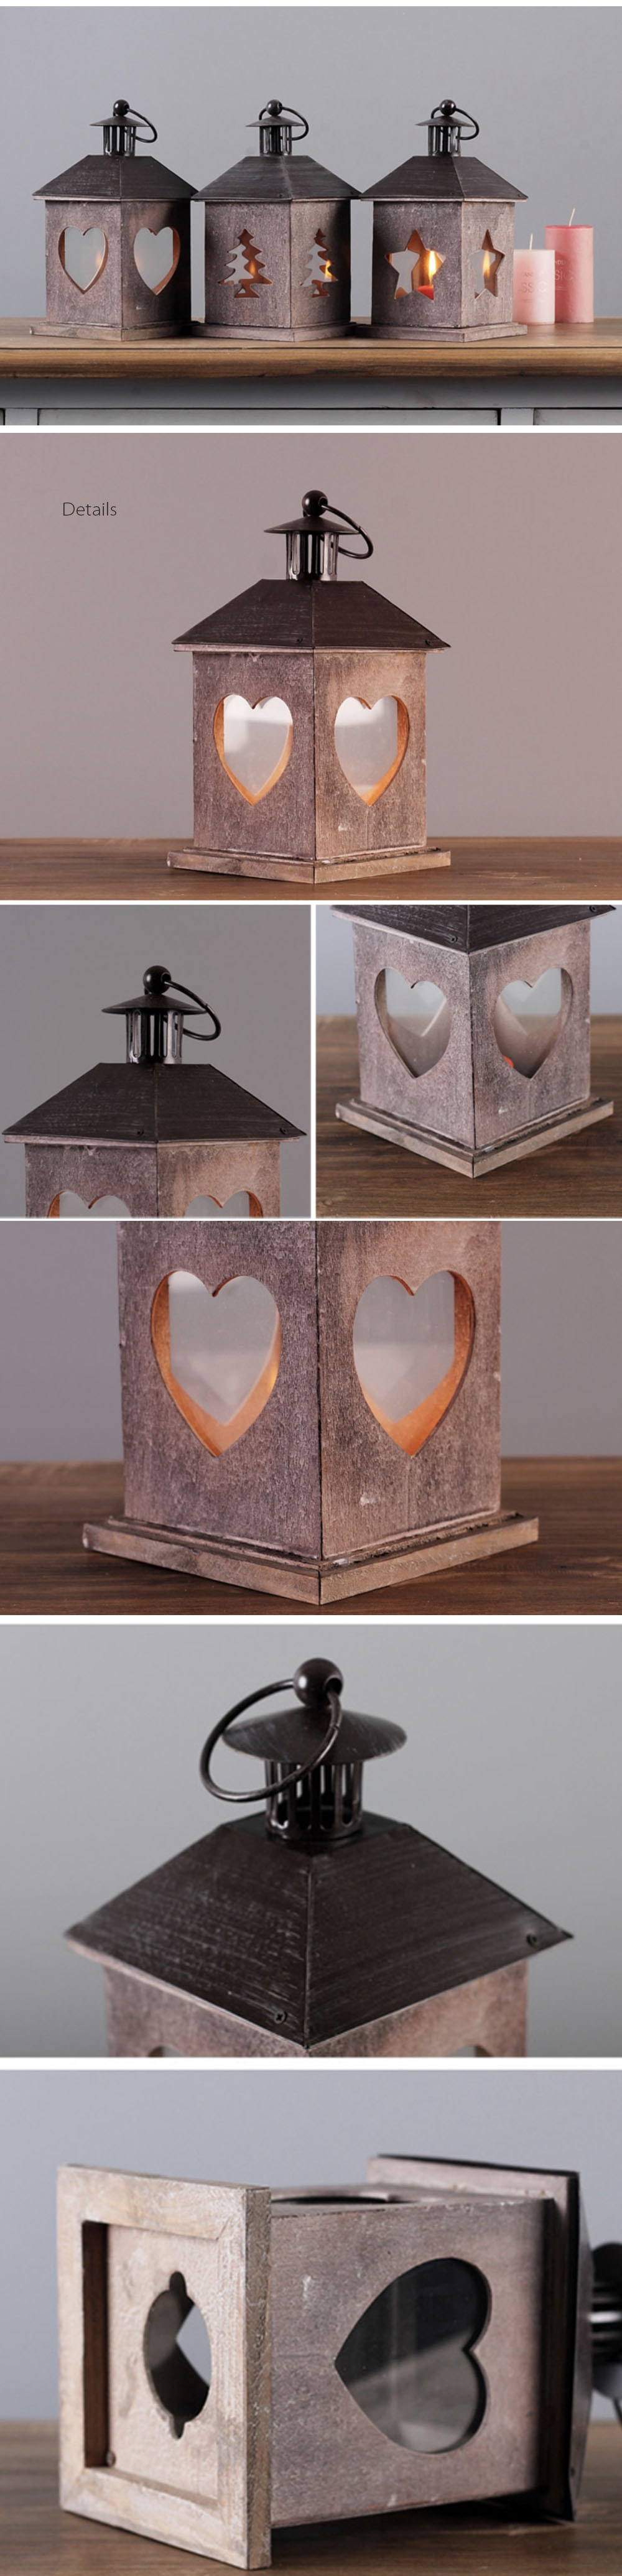 Vintage Style Lantern House Pattern Candle Holders